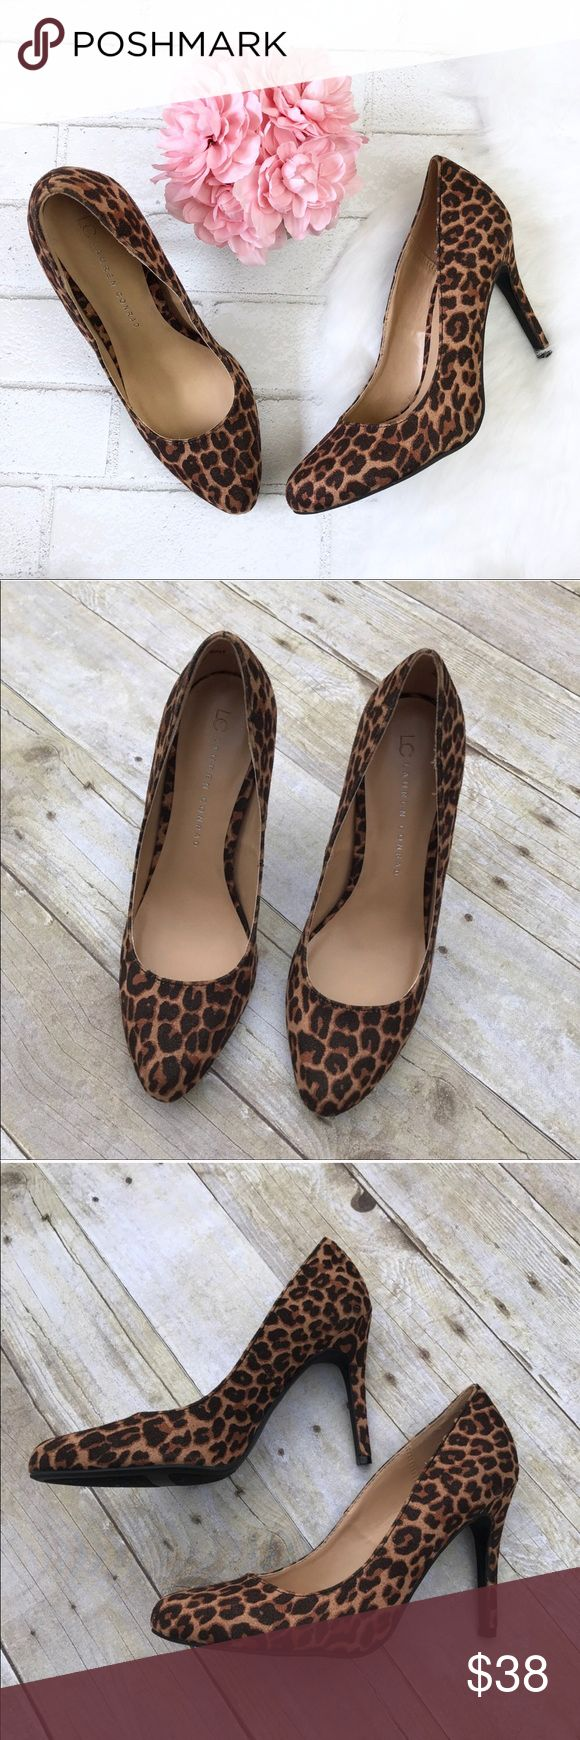 """LC Lauren Conrad Leopard Print Heels LC Lauren Conrad. Leopard Print Heels. Size 8. New, will come without box. Heel measures 4 inches. Can be worn casual, professional, or for a night out!   ❌ No trades or off Poshmark transactions.   👌🏻Quick shipping.   💁🏻Offers welcome through """"Make an Offer"""" feature.   ❔ Feel free to ask any questions. LC Lauren Conrad Shoes Heels"""